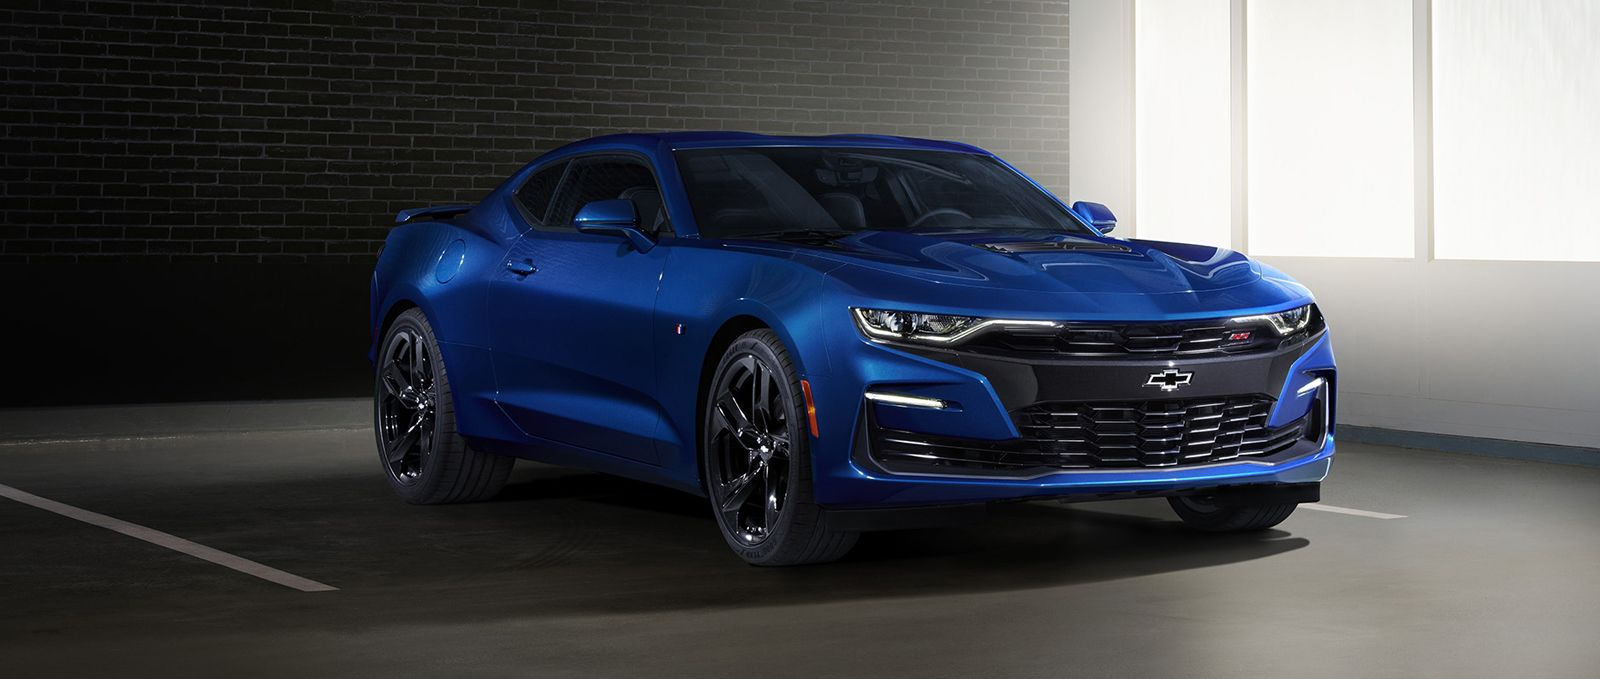 The 2019 Chevrolet Camaro Has Made Its Official Debut And While